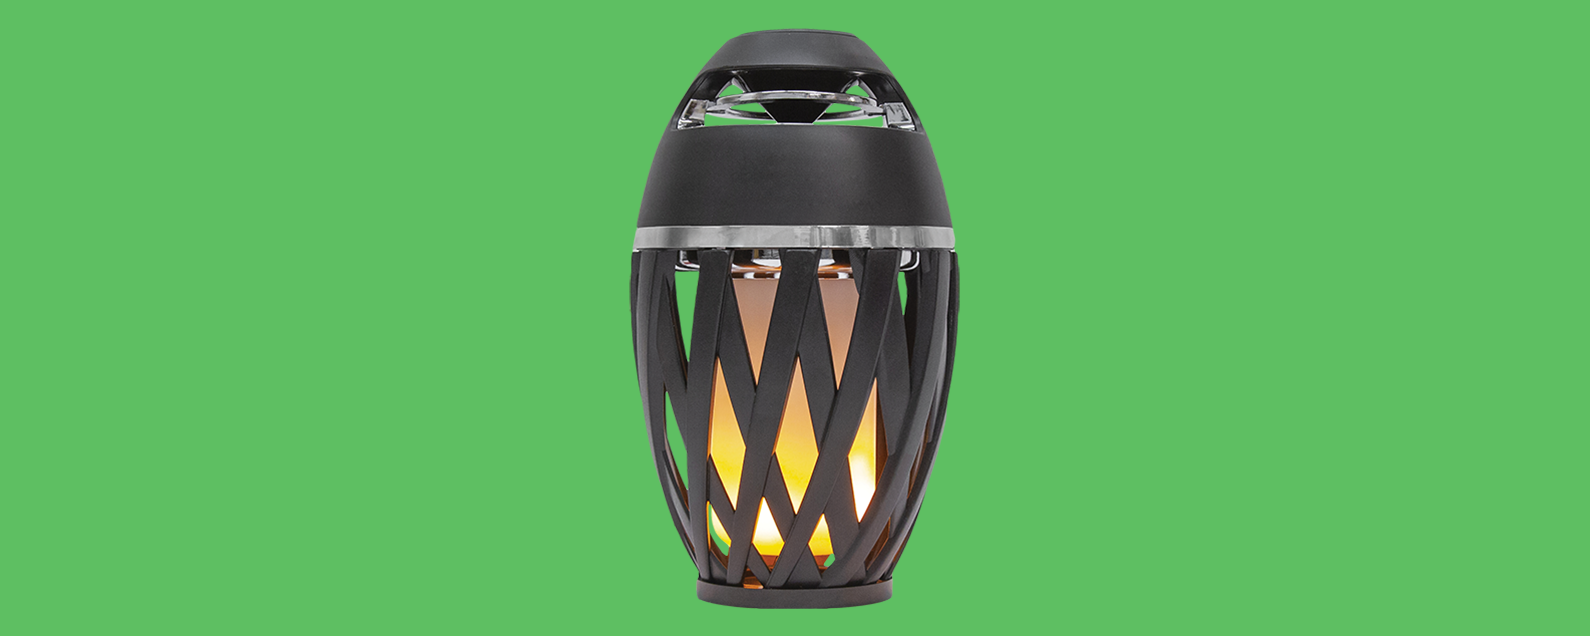 Bluetooth Speaker Review Party Outside With Tiki Torch